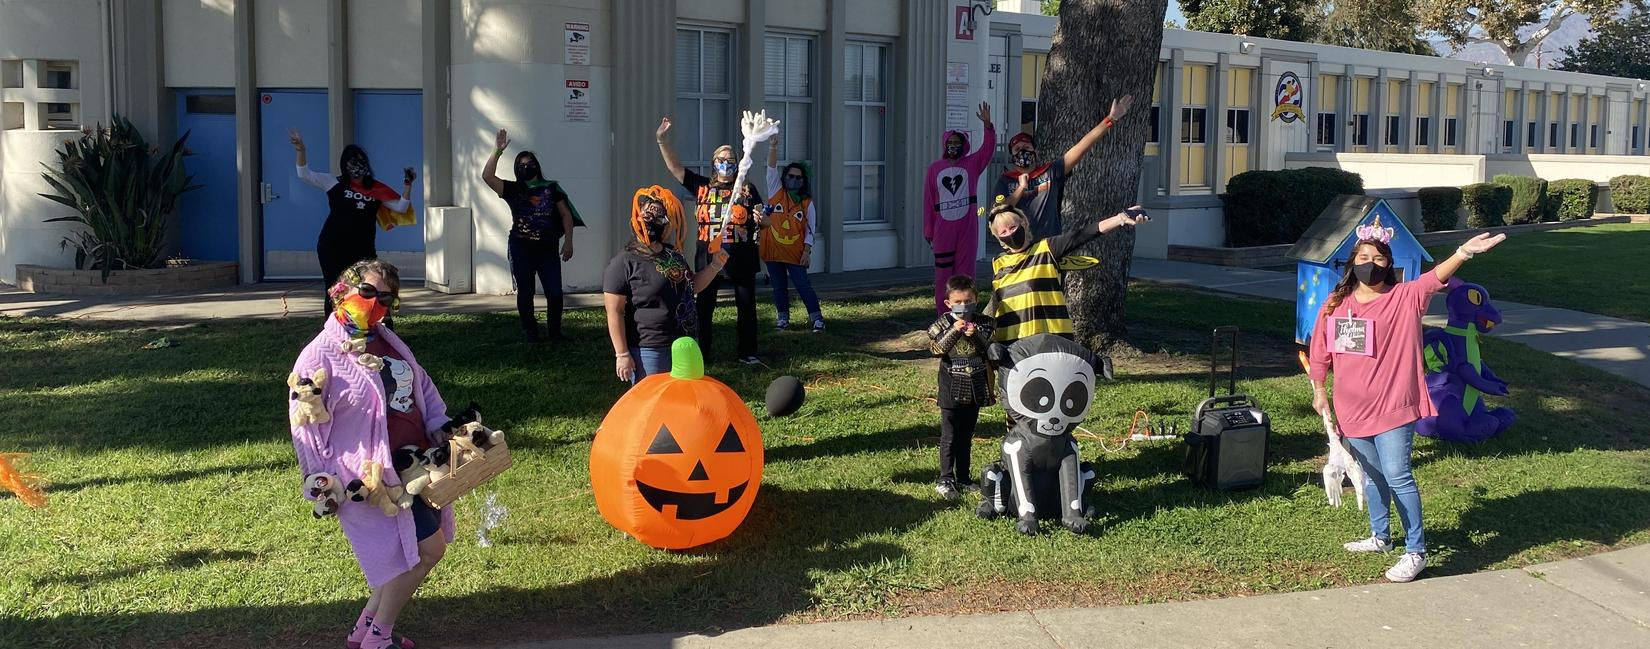 Cherrylee Staff Welcomes Students at Drive-Thru Halloween Event